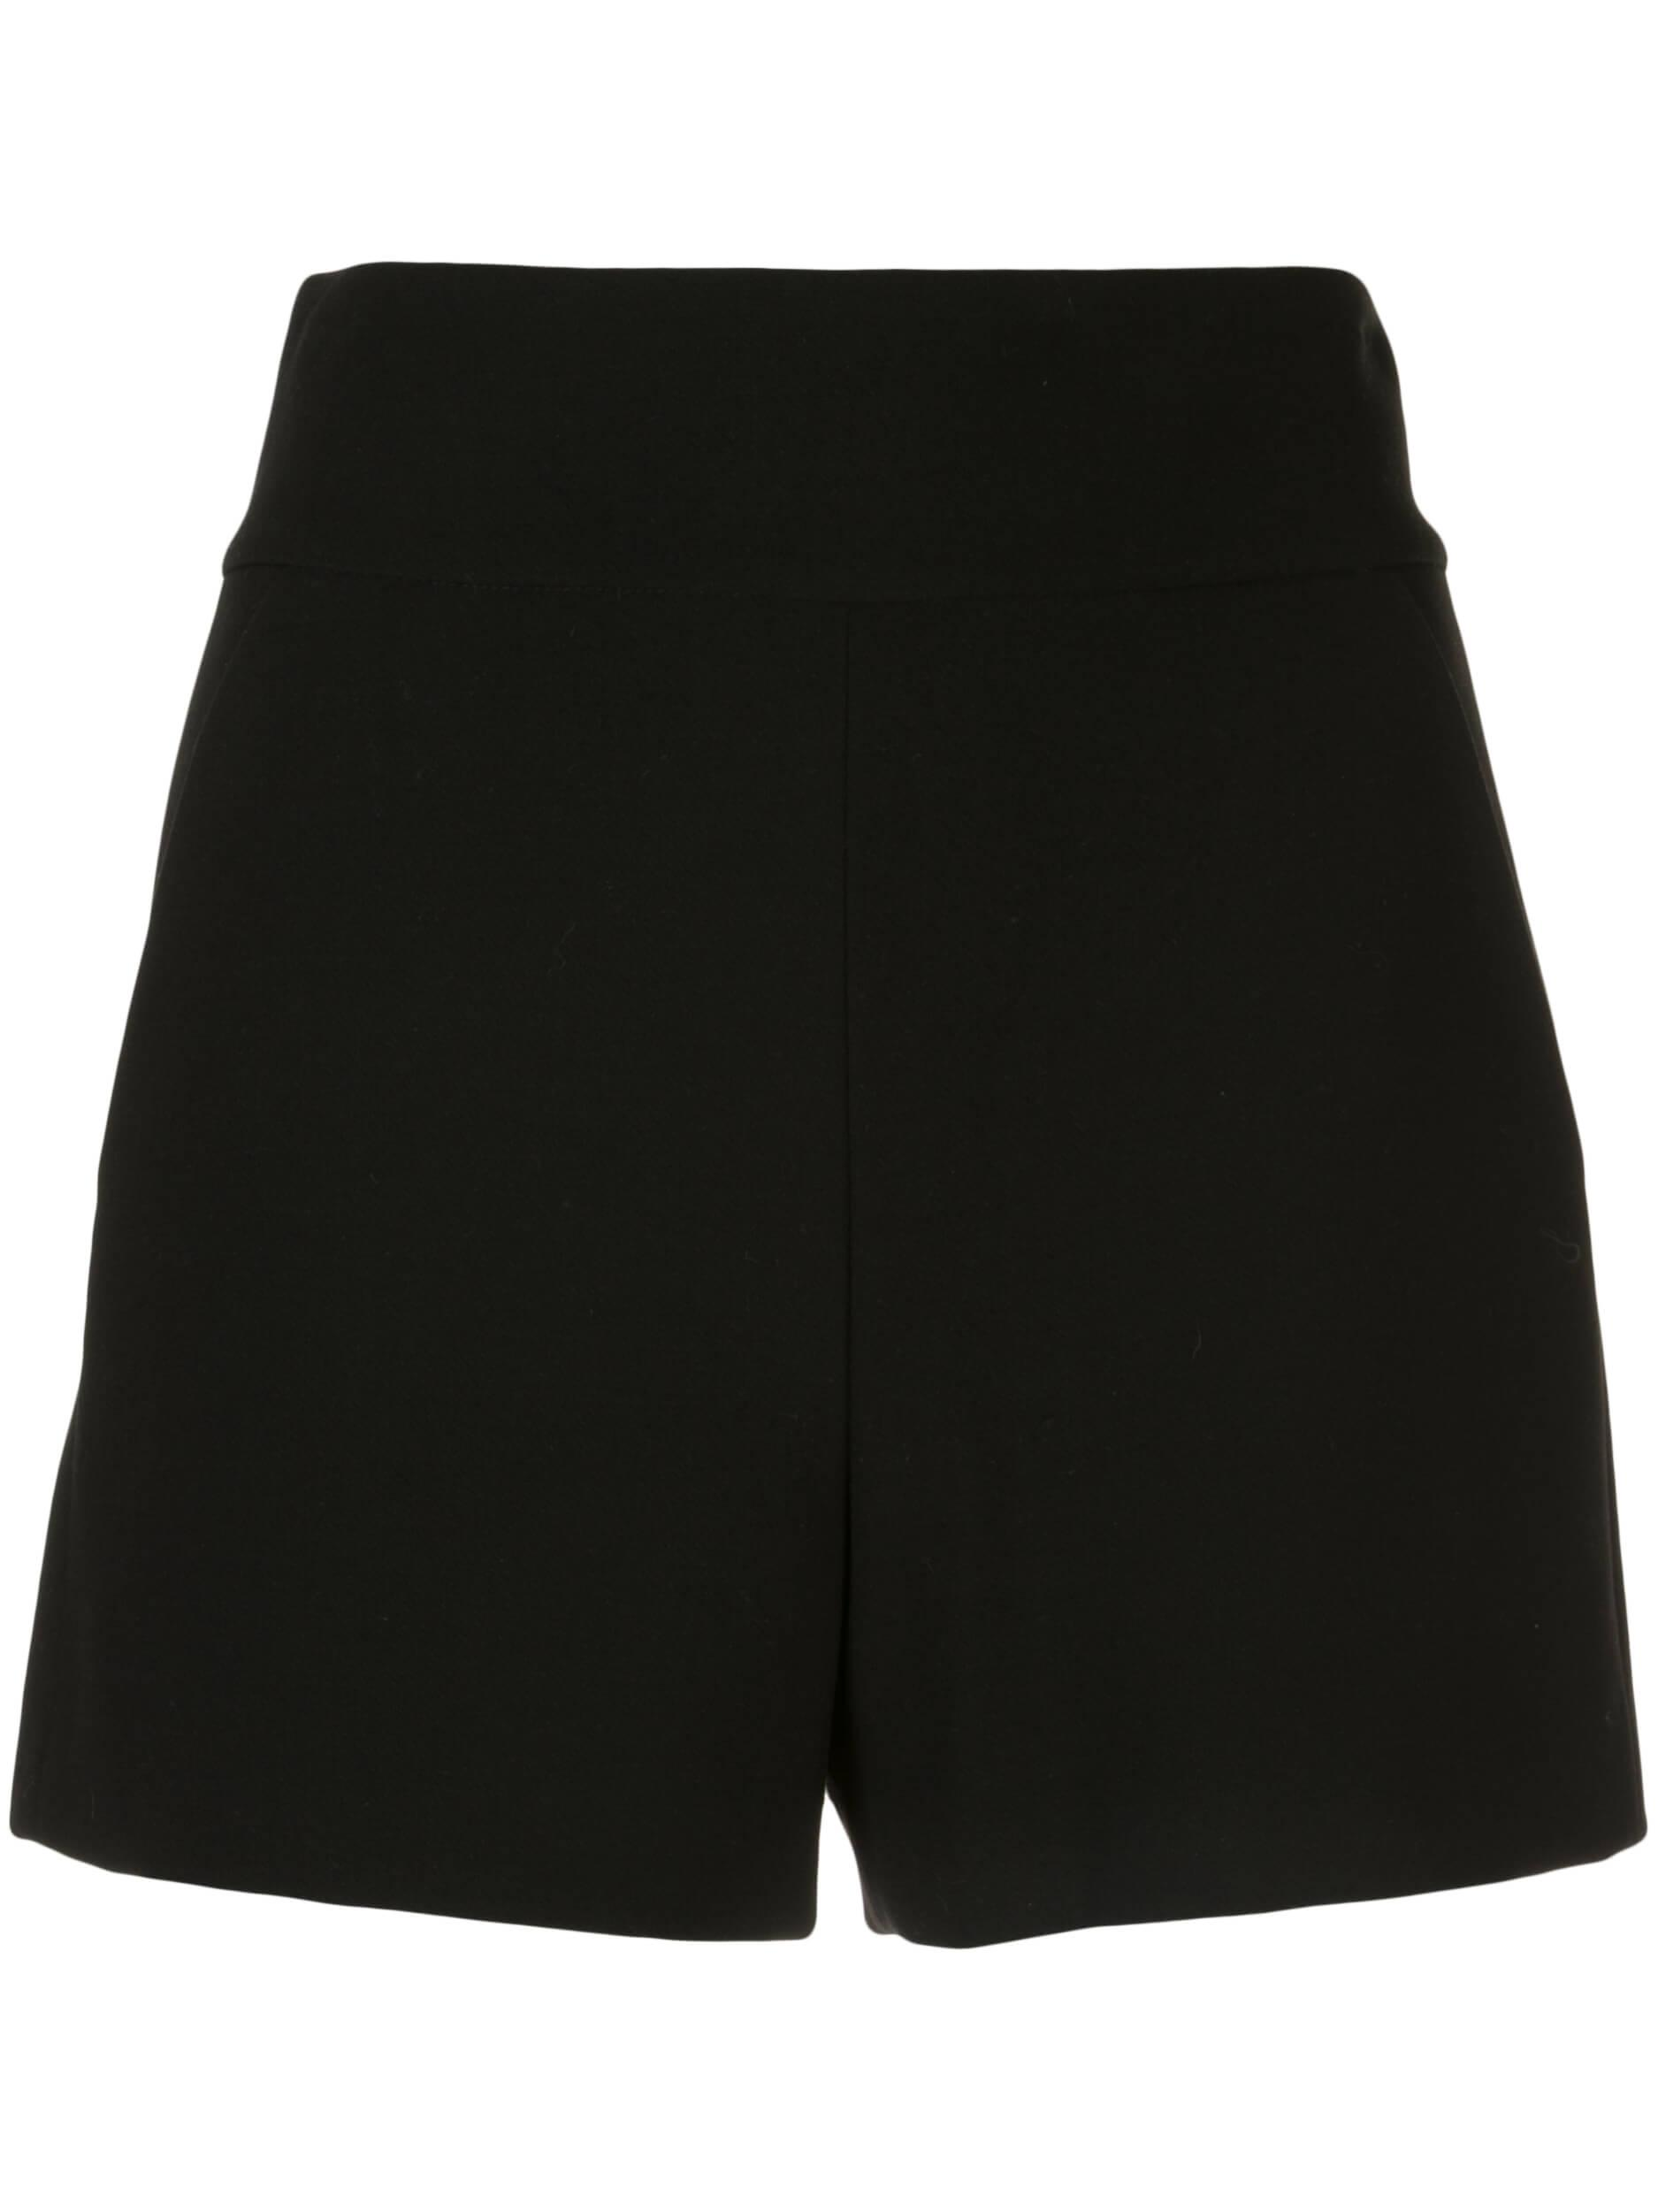 Donald High Waisted Shorts Item # CL000213605